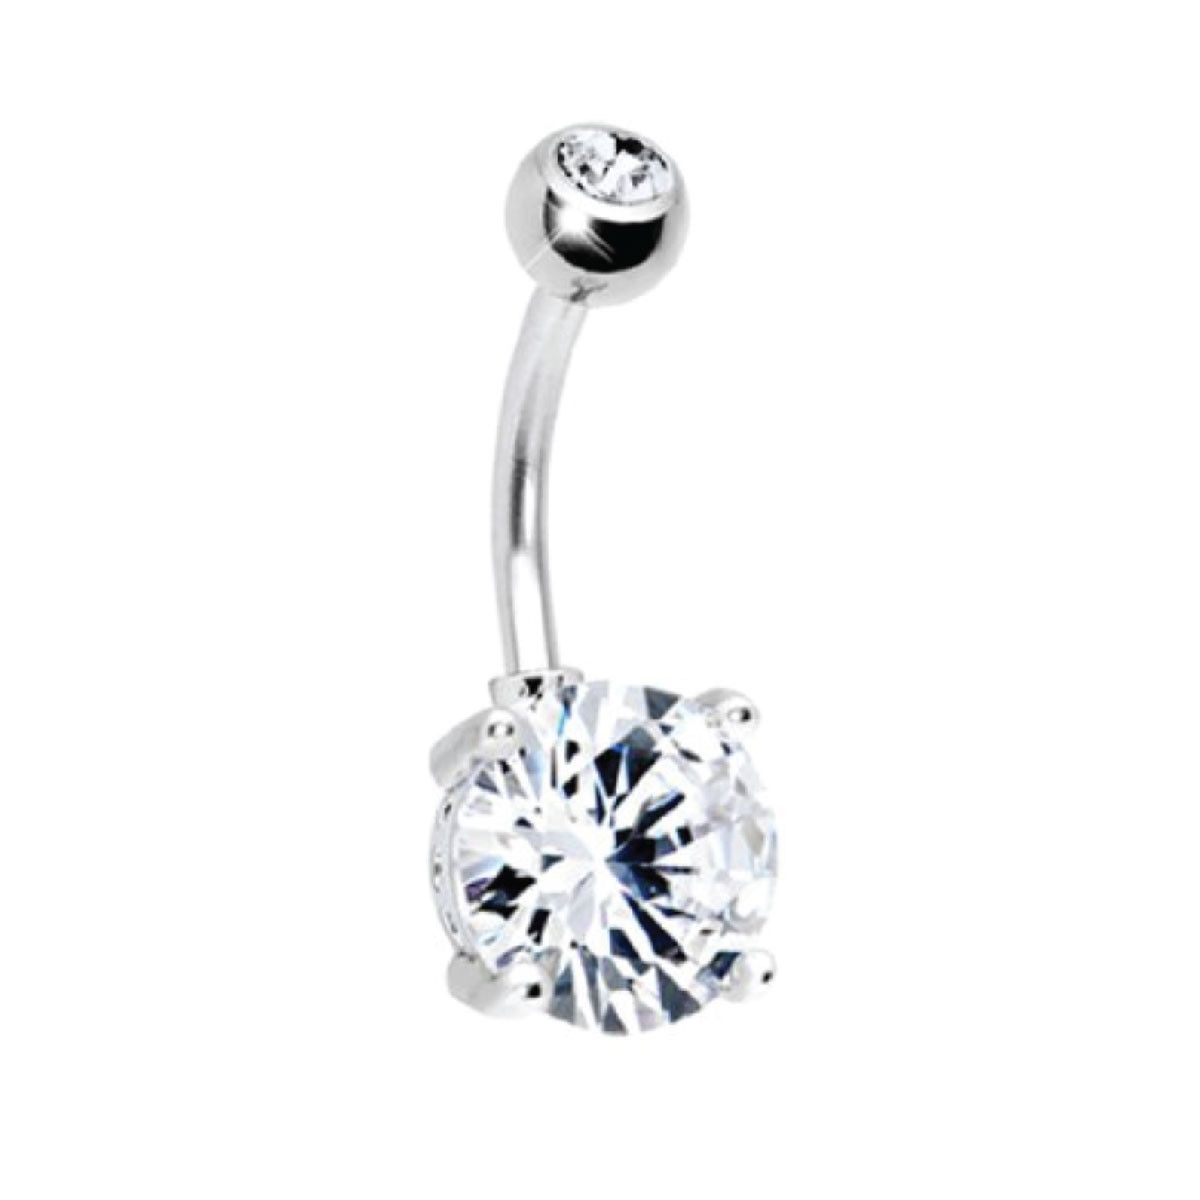 Body piercing retainer  BodyJYou Belly Ring Big Cubic Zirconia Clear Belly Button Ring G